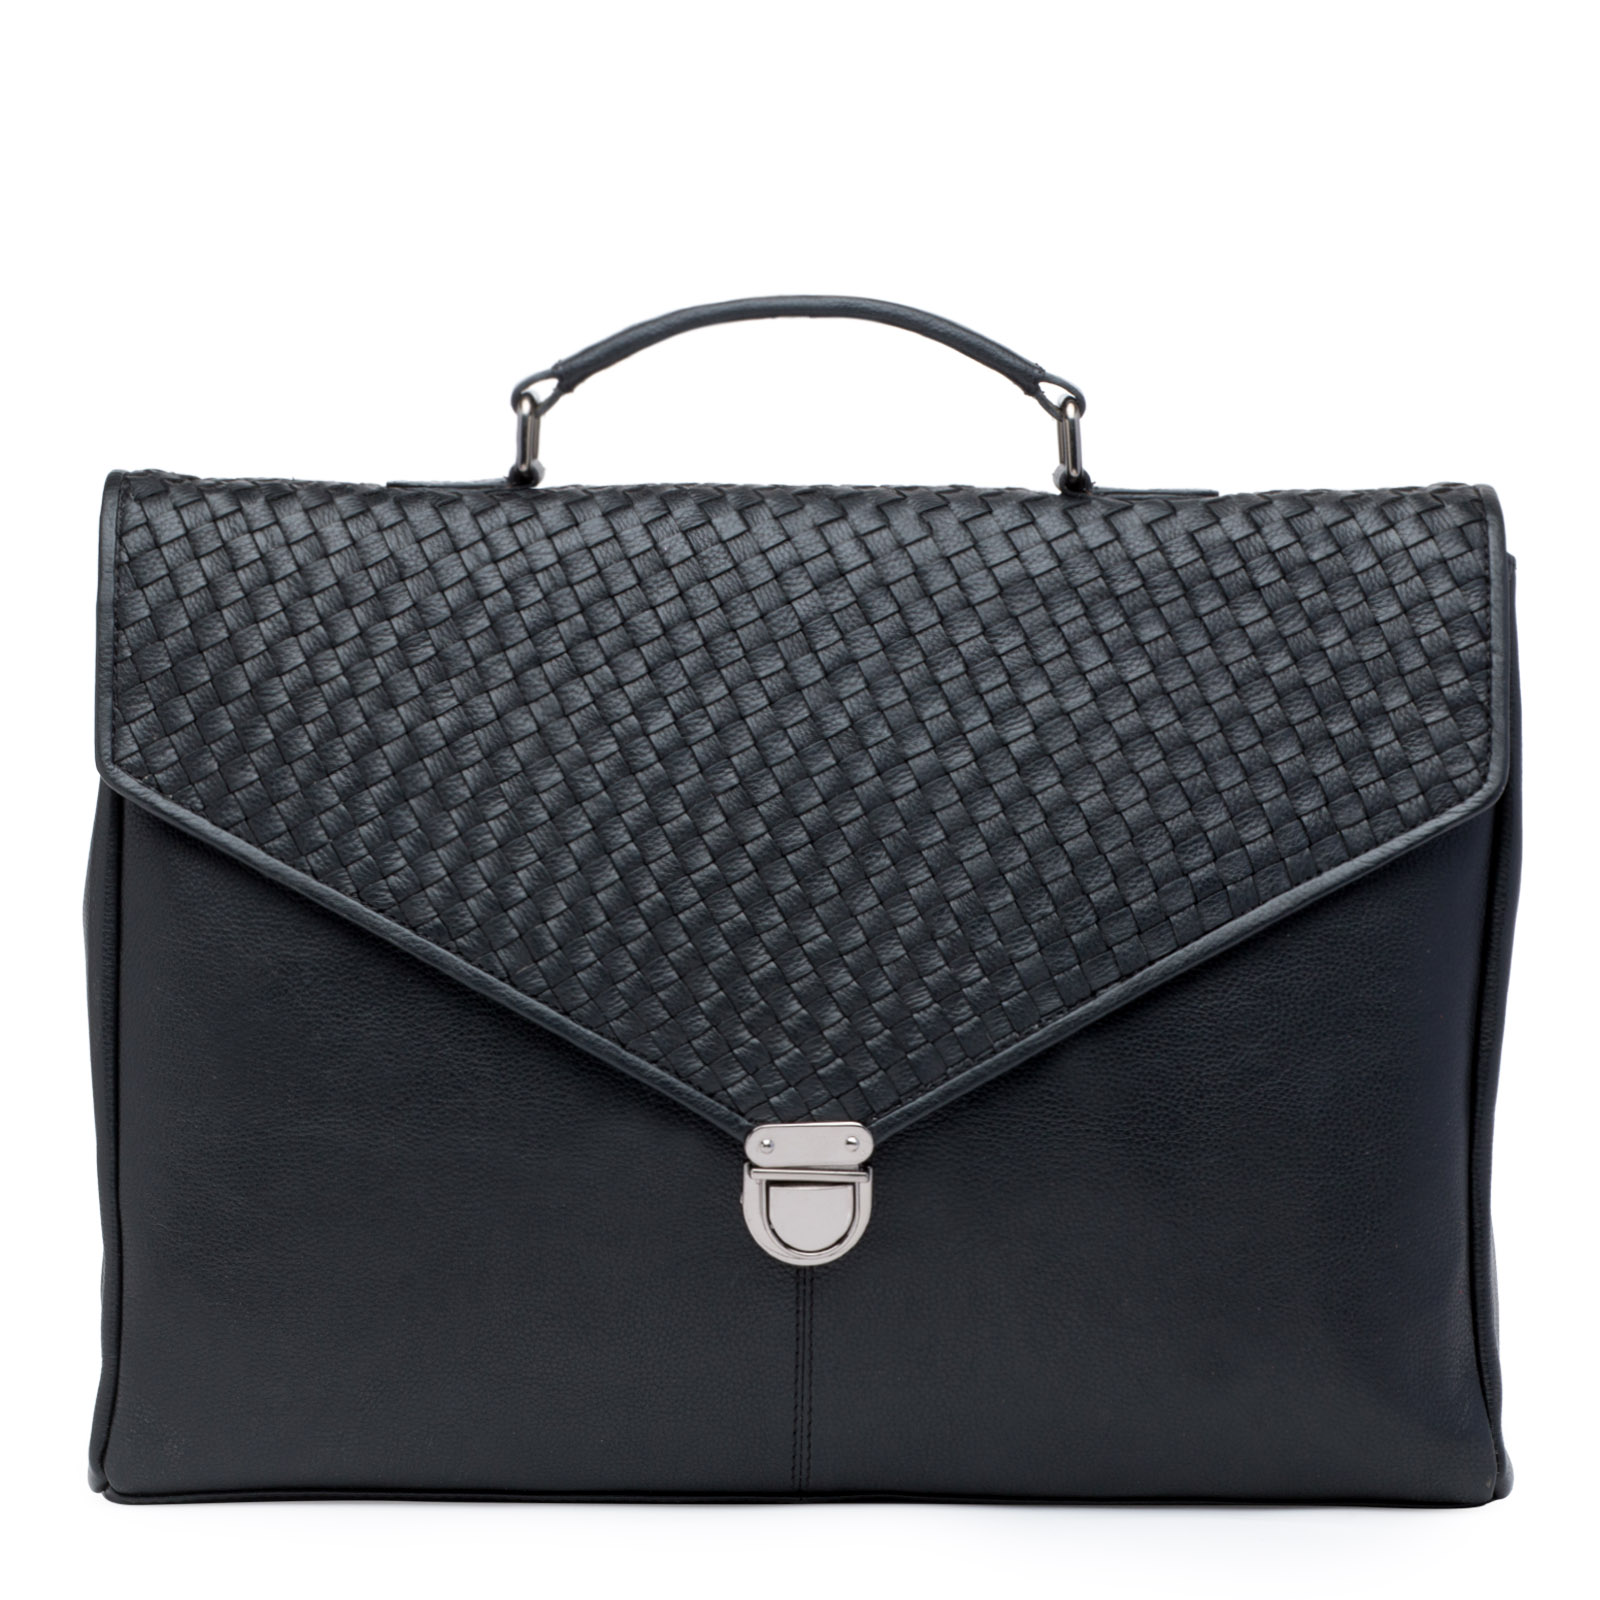 Black Genuine Leather Weave Pattern Portfolio Bag